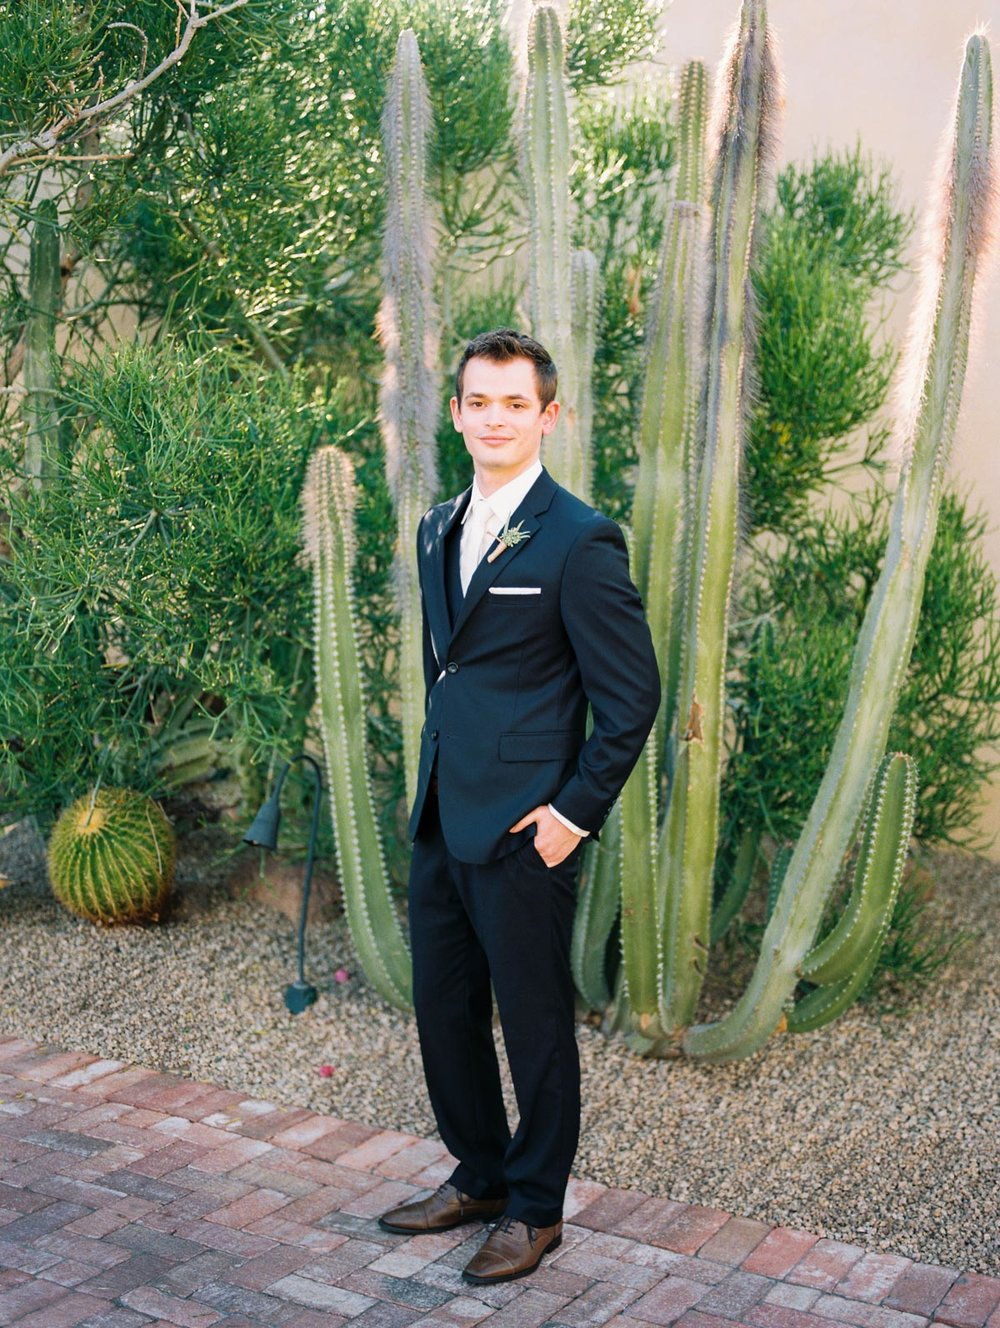 groom-in-tux.jpg